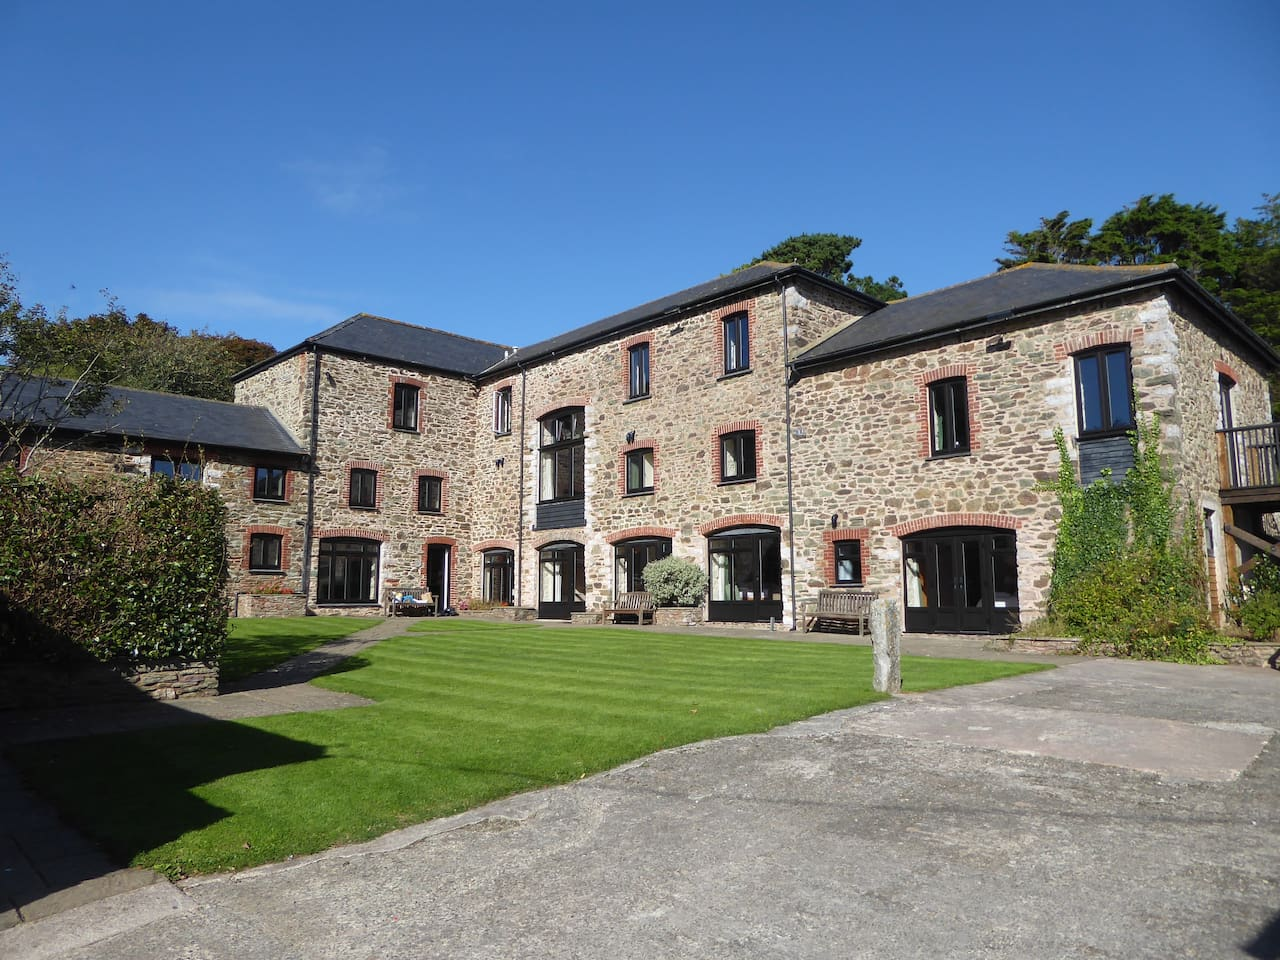 Part of the Hope Barton Barns complex centred around a courtyard